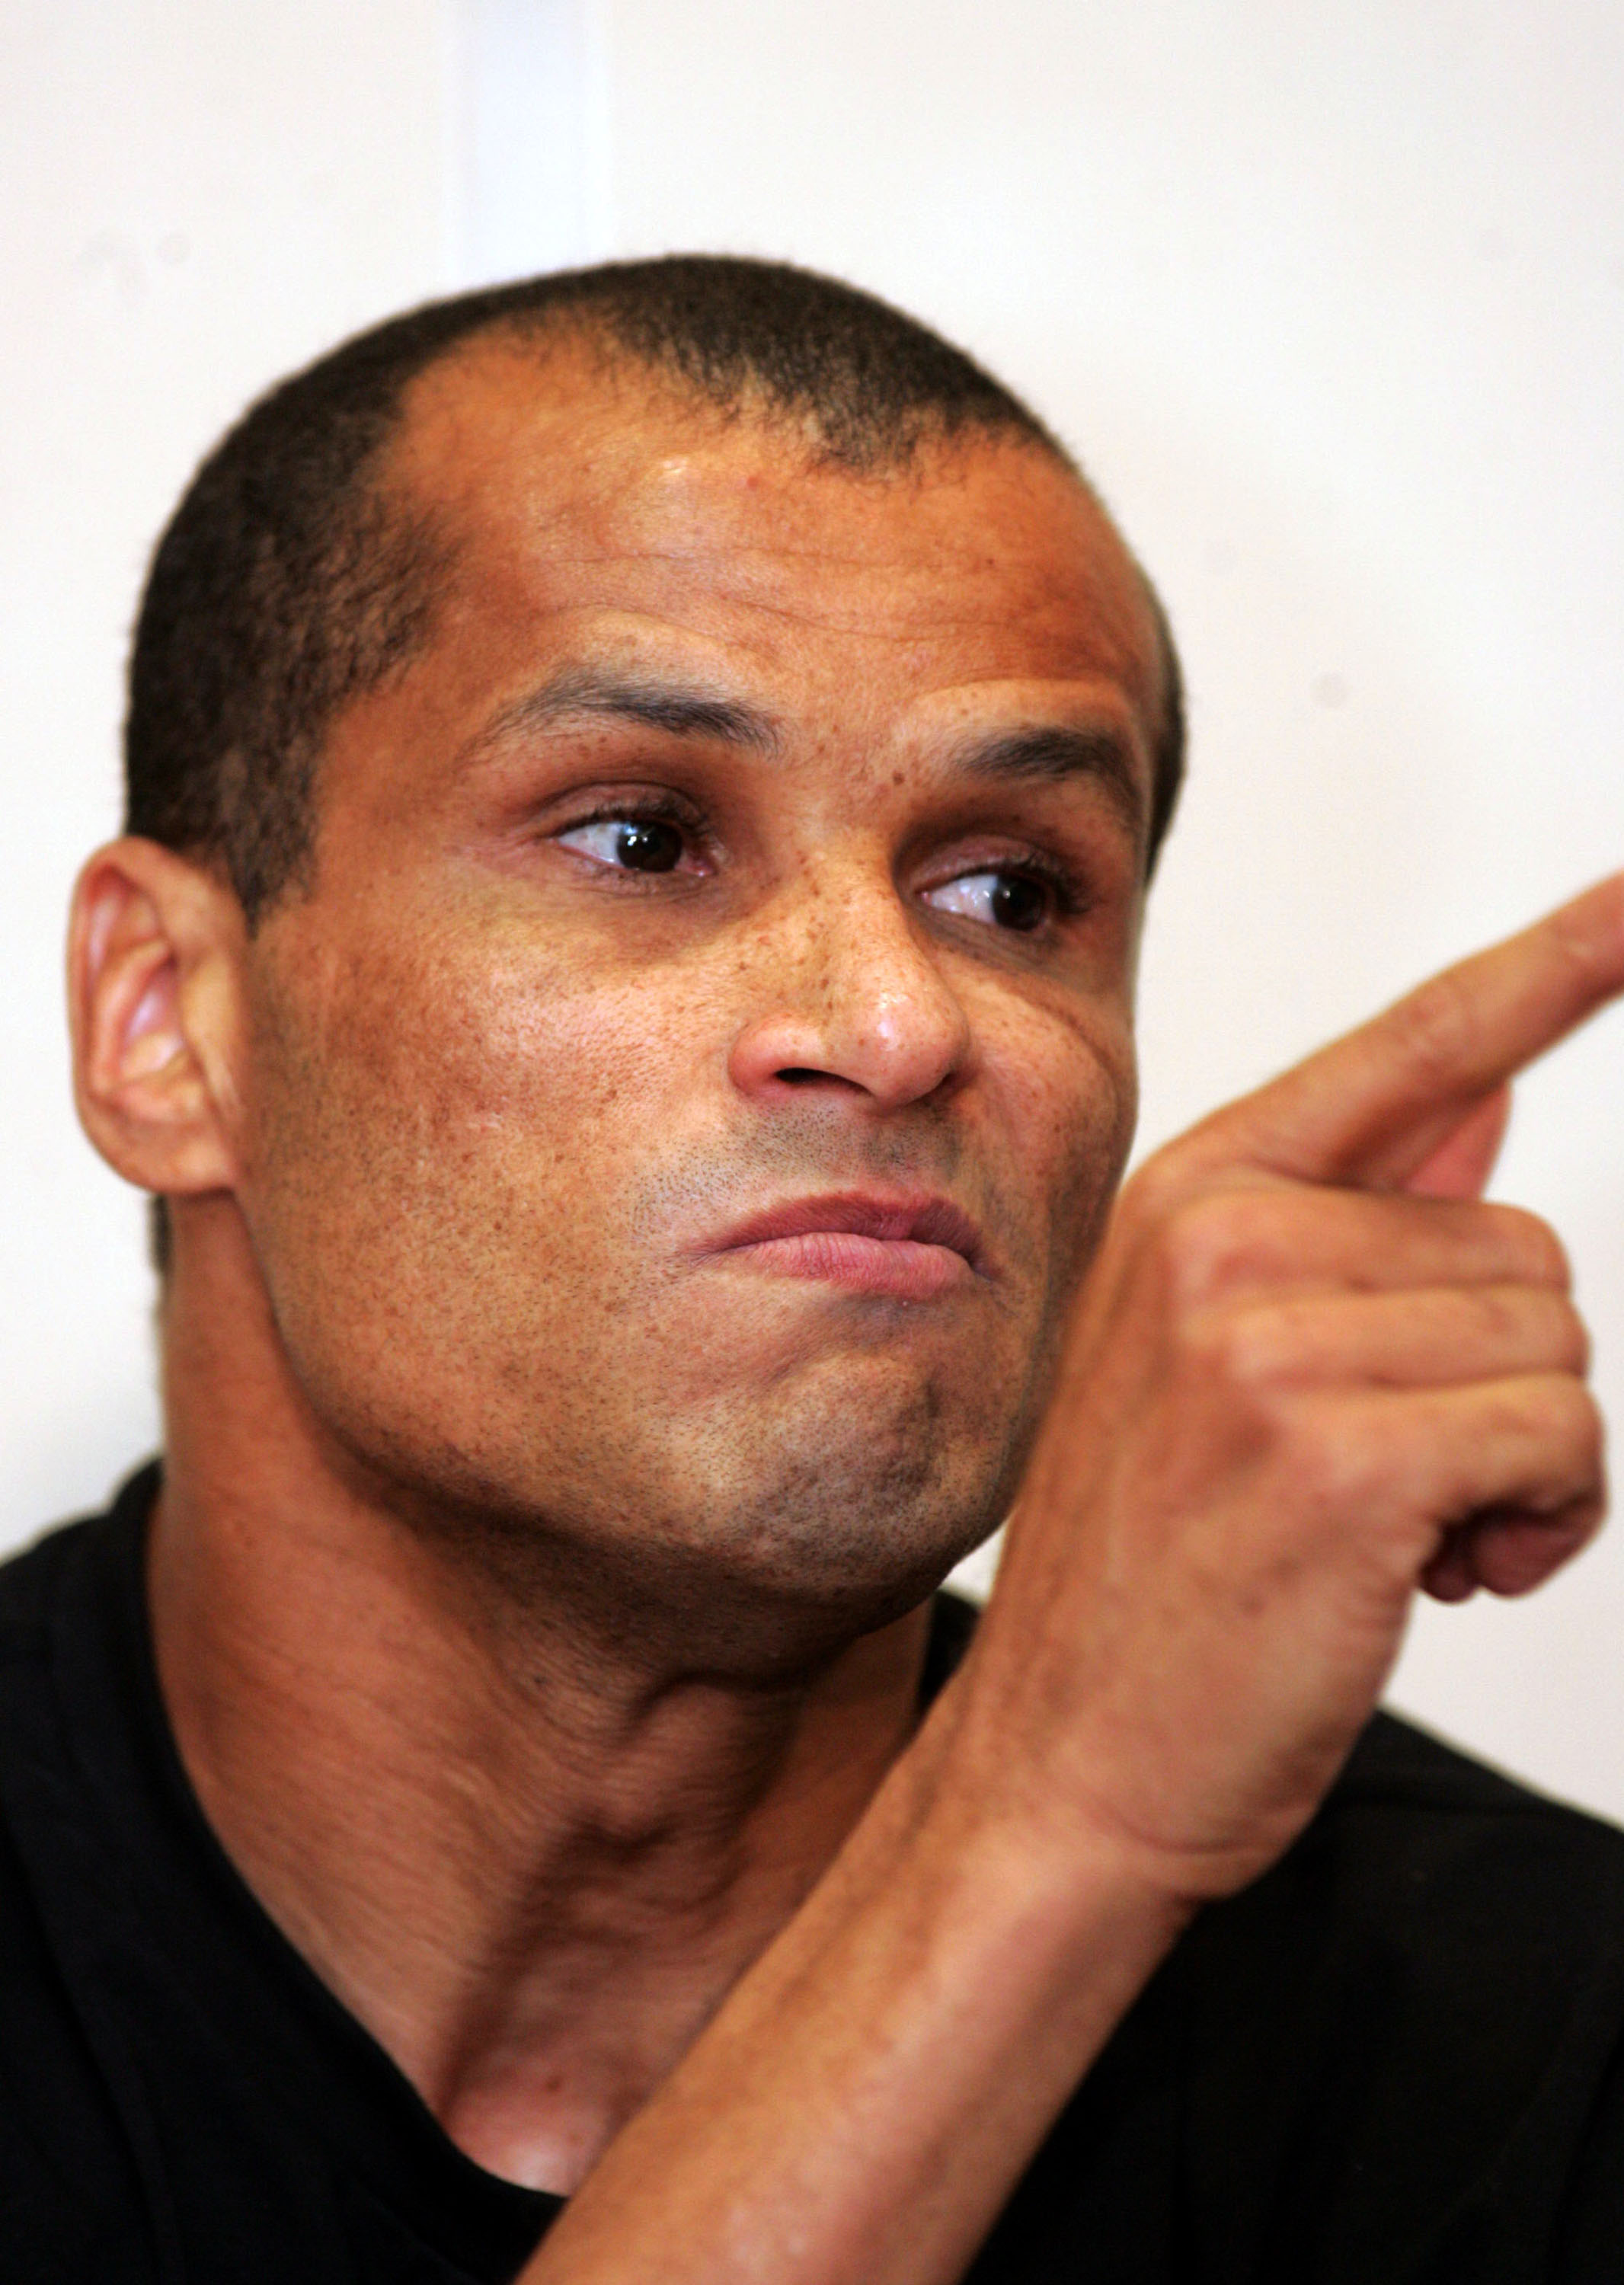 Brazilian soccer star Rivaldo gestures during a news conference in Athens, Saturday, May 12, 2007. The 35-year-old playmaker rejected an offer to renew his contract for another year with Greek champion Olympiakos, arguing the terms were unfair. Rivaldo wh